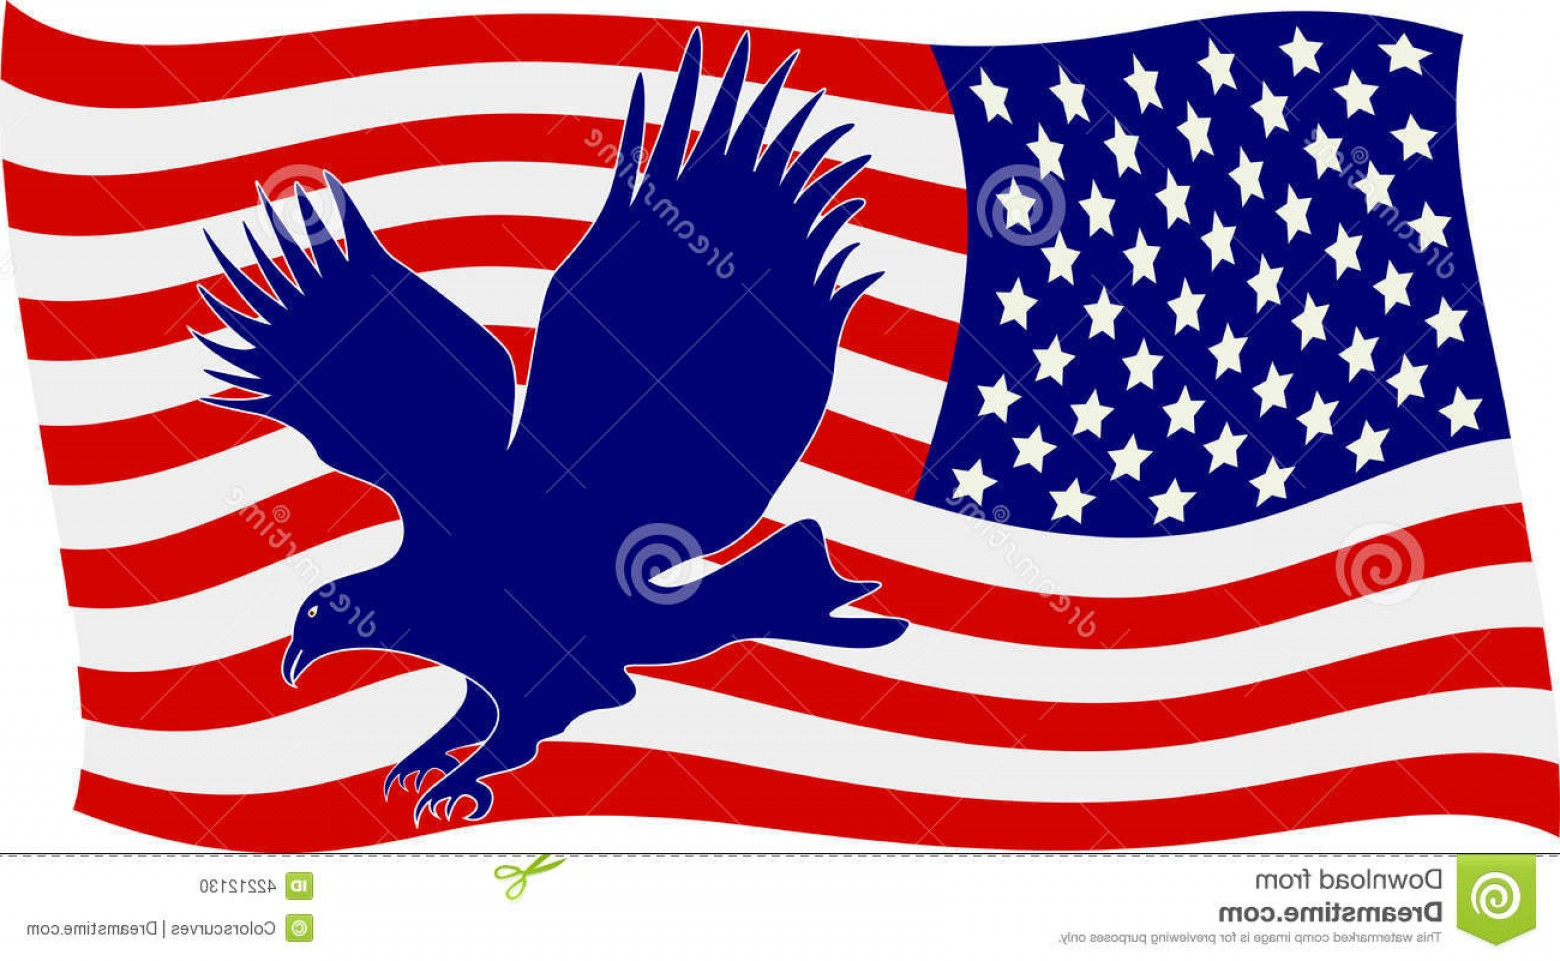 Patriotic Bald Eagle Vector: Stock Illustration American Flag Bald Eagle Vector Drawing Represents Design Image